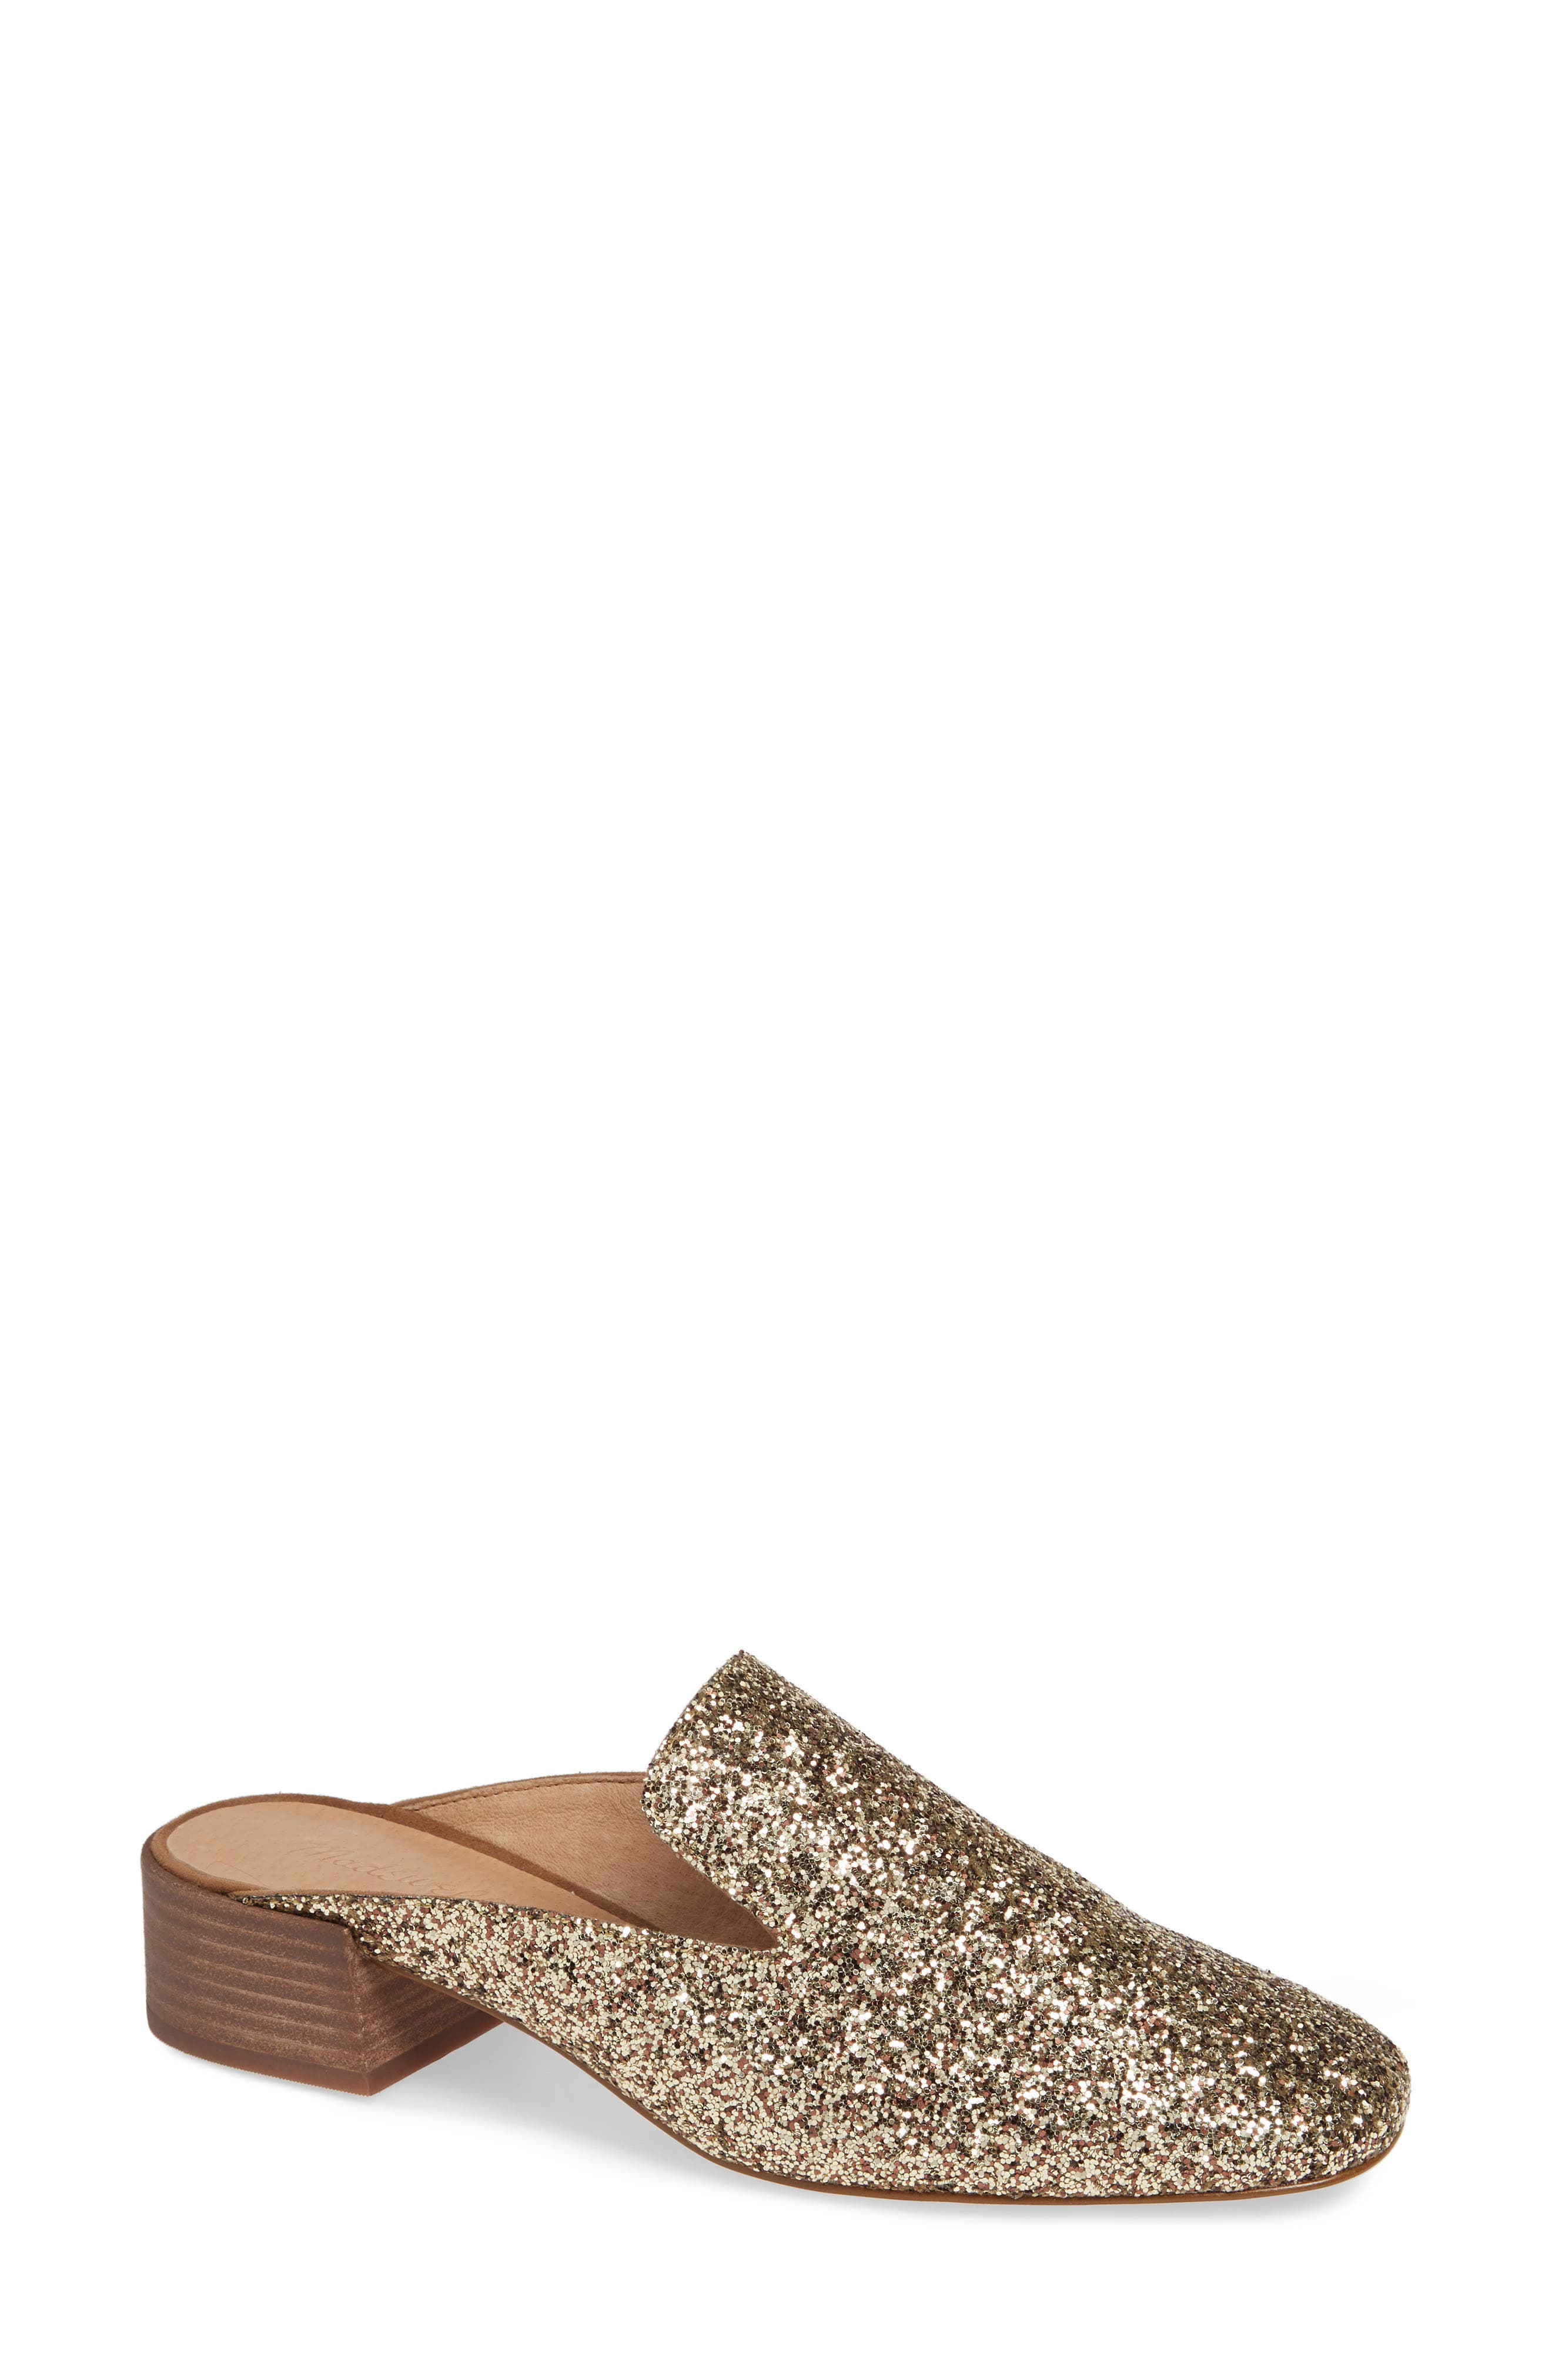 The Willa Loafer Mule,                             Main thumbnail 1, color,                             SMOKY GOLD